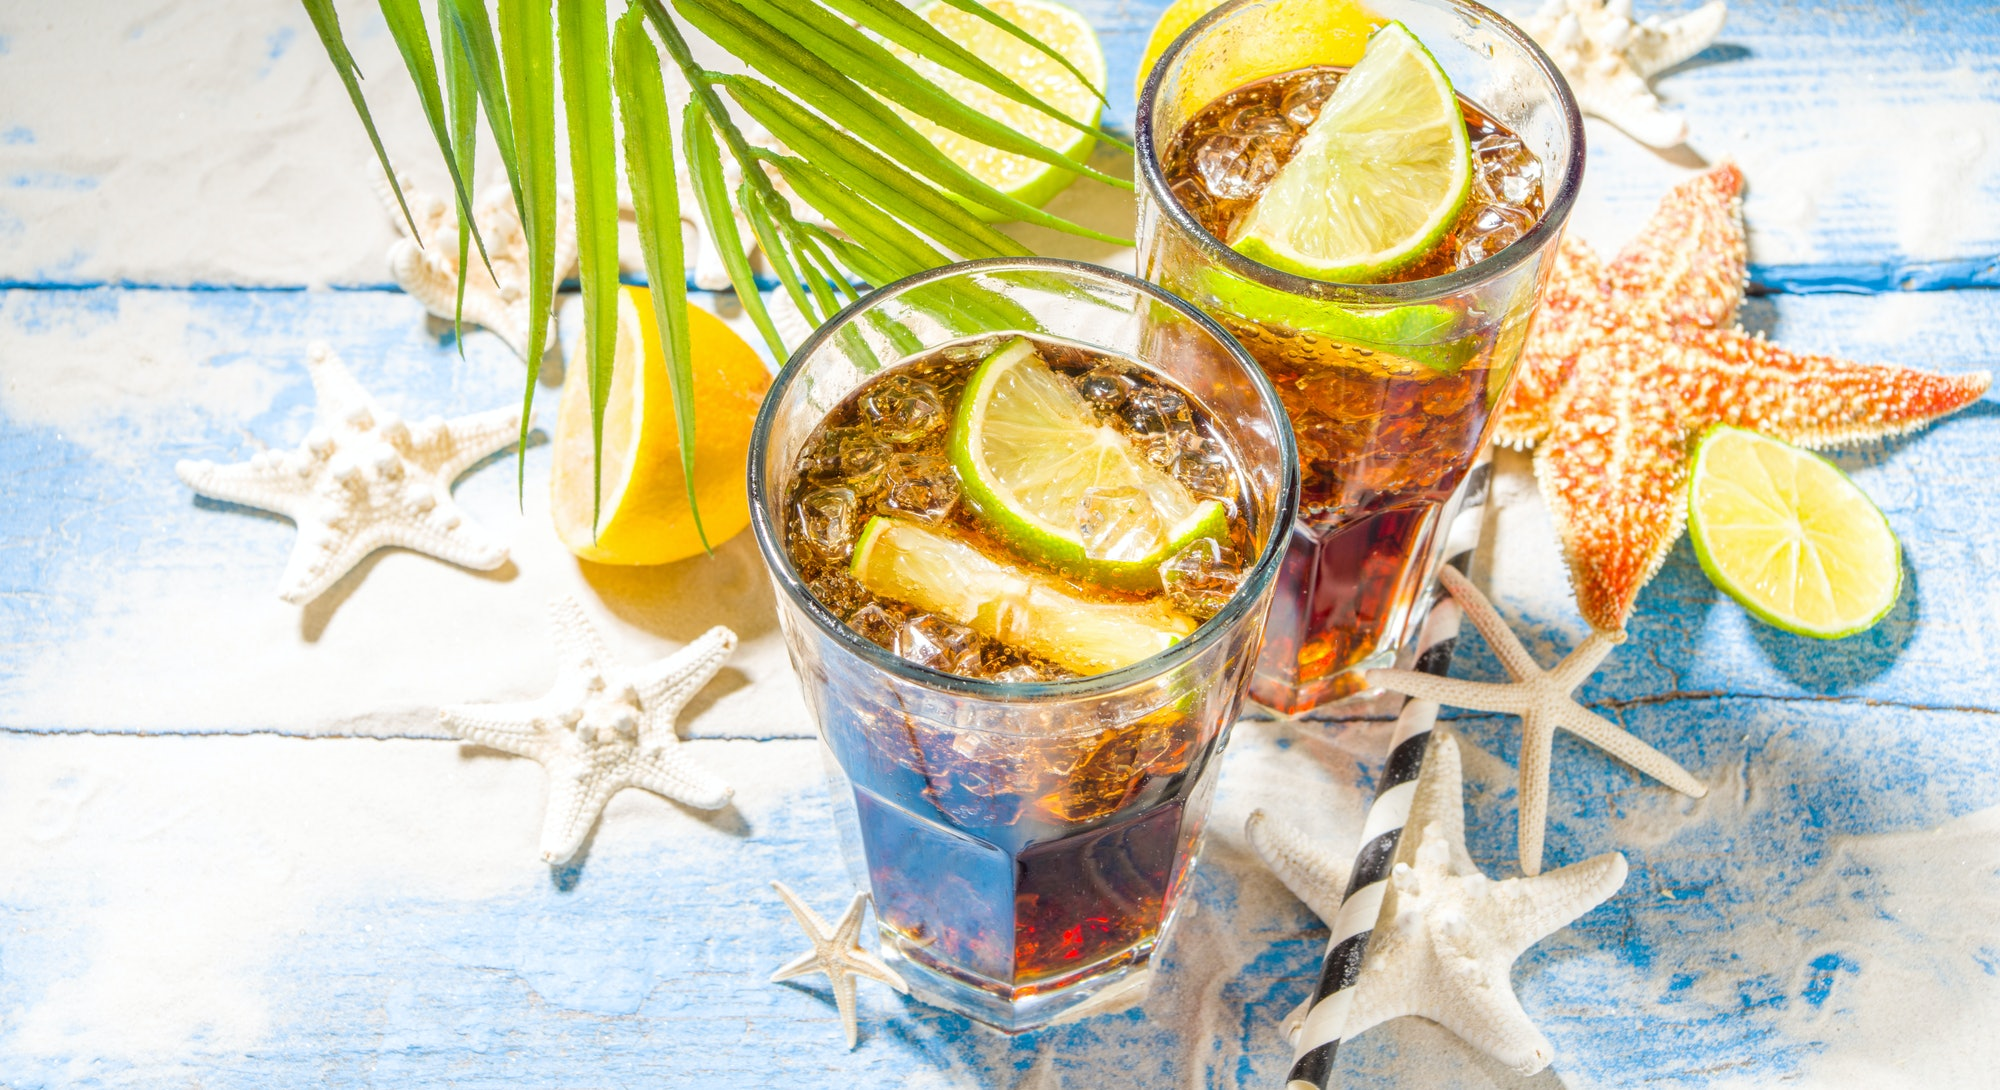 Summer holiday vacation tropical background with iced beverages. Cuba Libre, long island iced tea co...